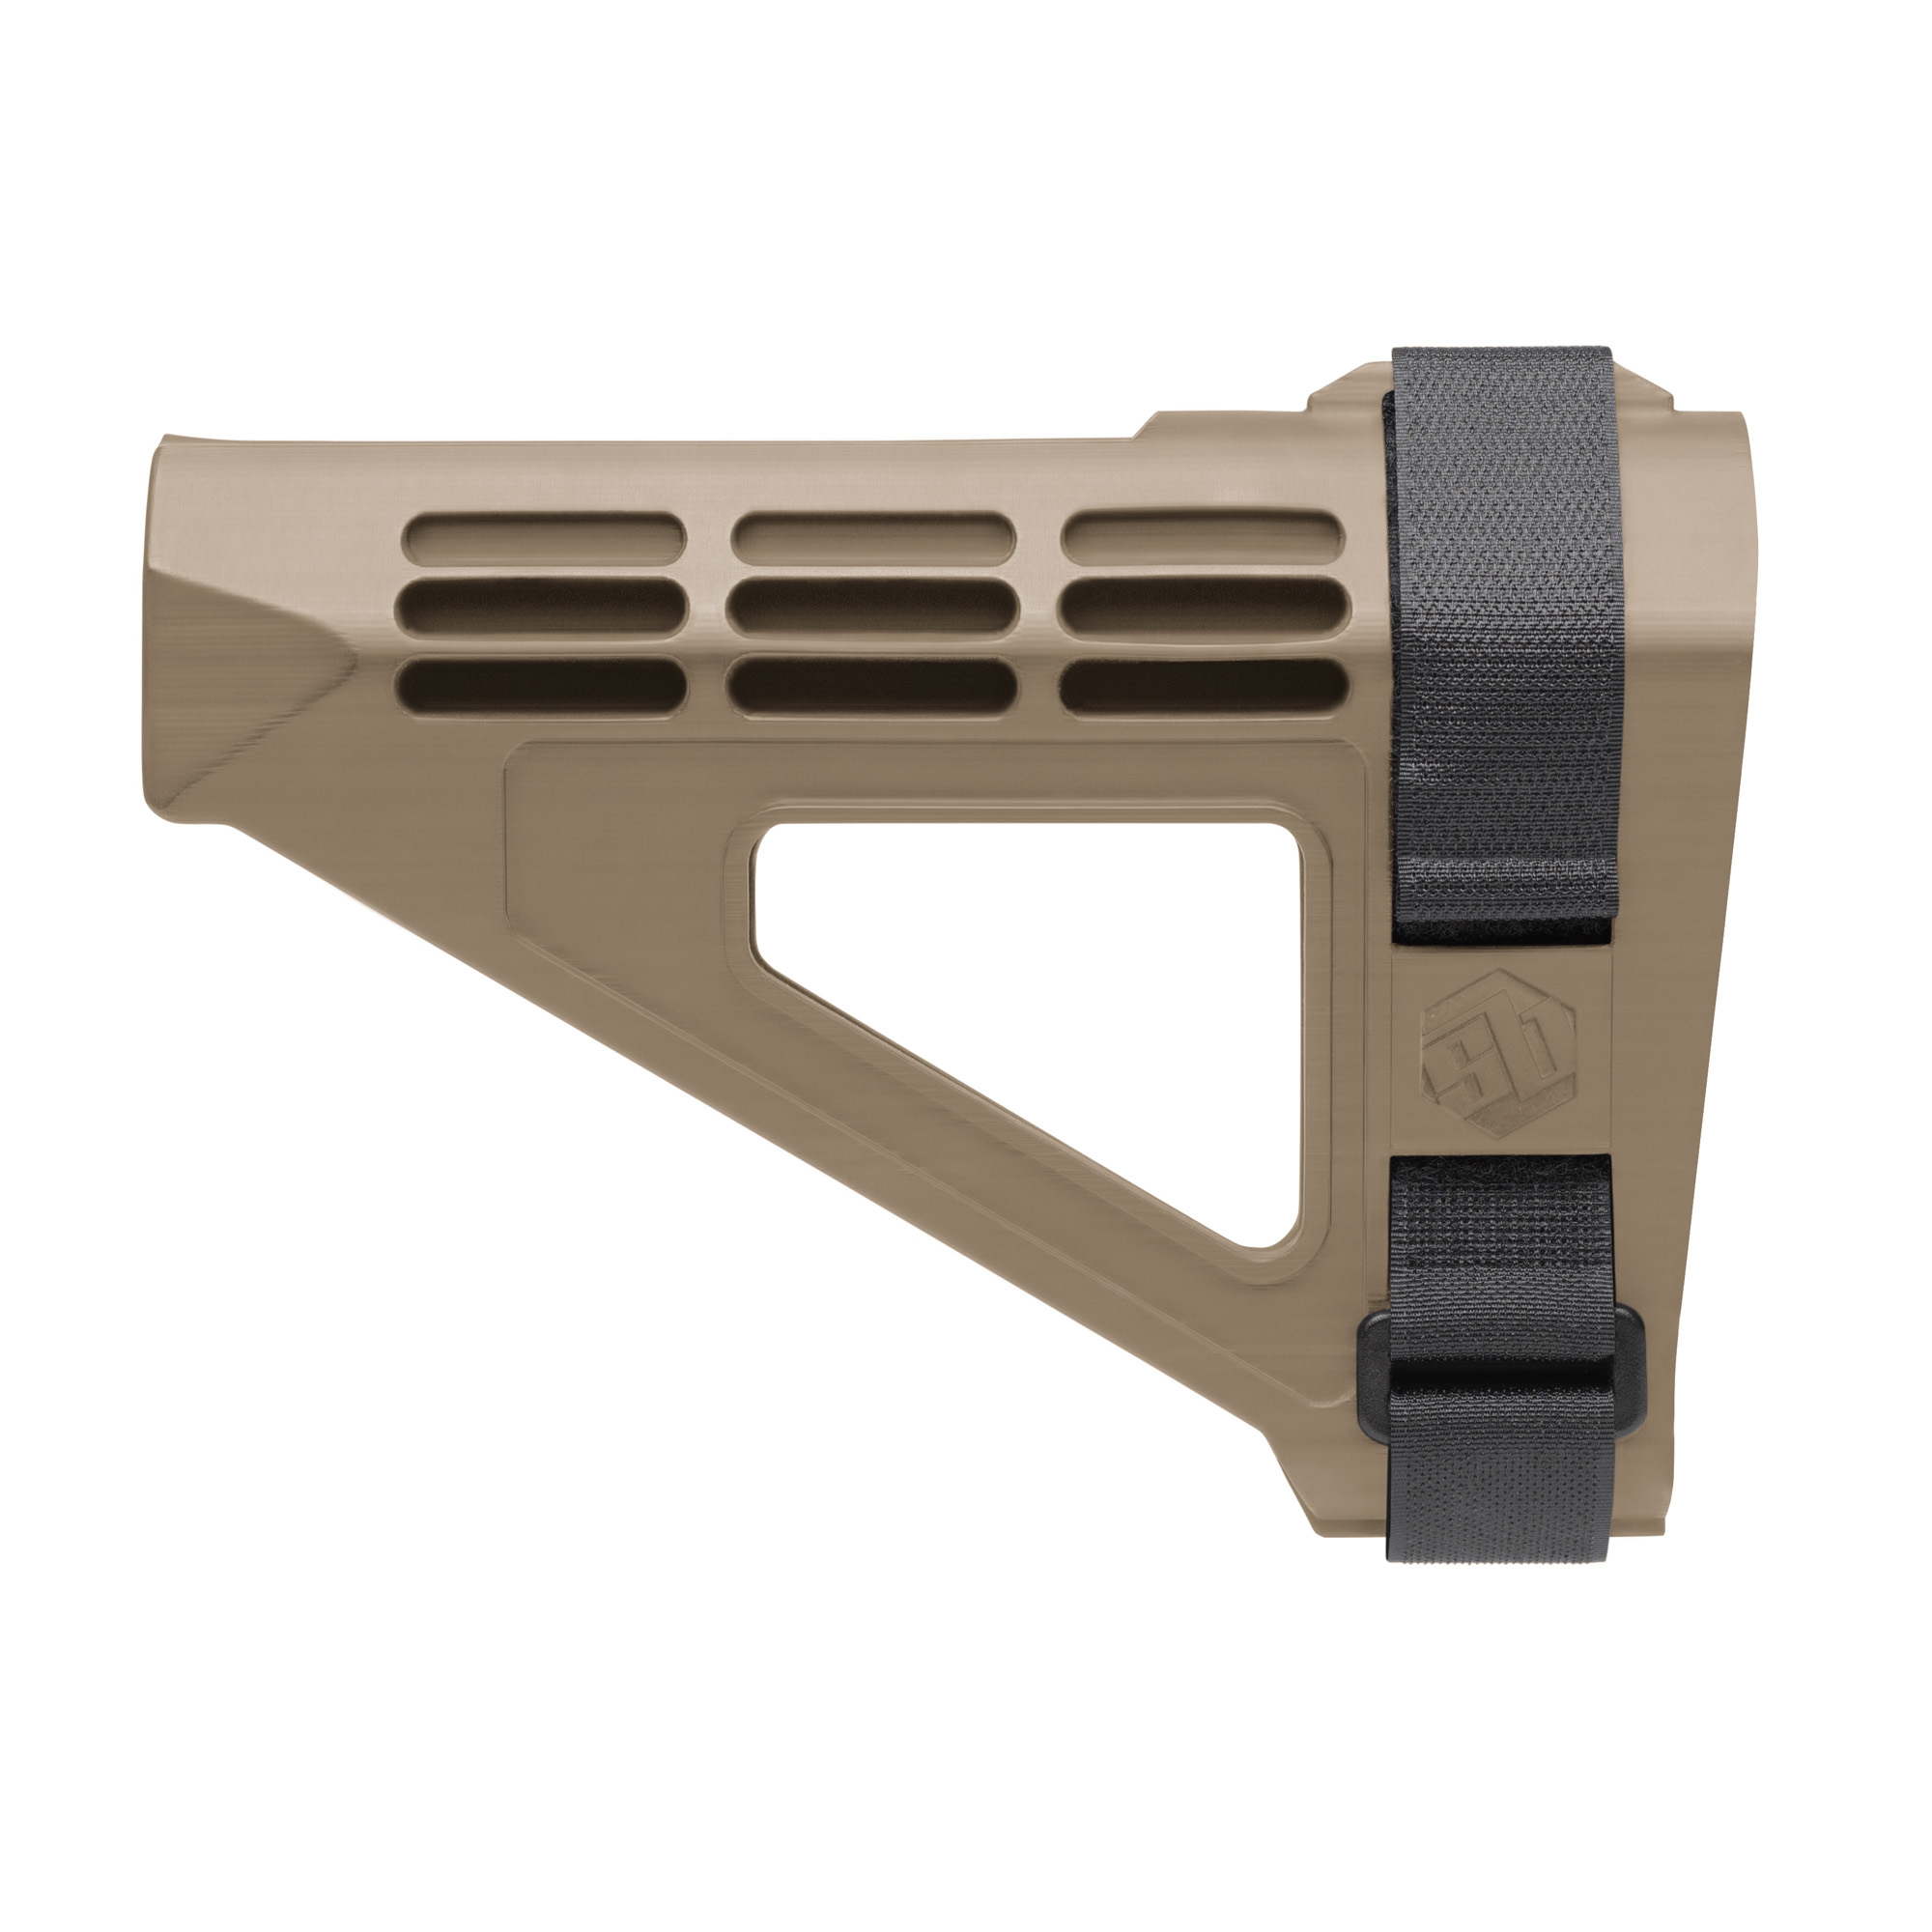 """The SBM4 Pistol Stabilizing Brace(R) is the evolution of the original SB15(TM). Thinner"""" lighter and with enhanced cheek weld ergonomics. The SBM4 provides increased stability"""" improved accuracy and usability. US veteran designed and proudly made in the USA."""